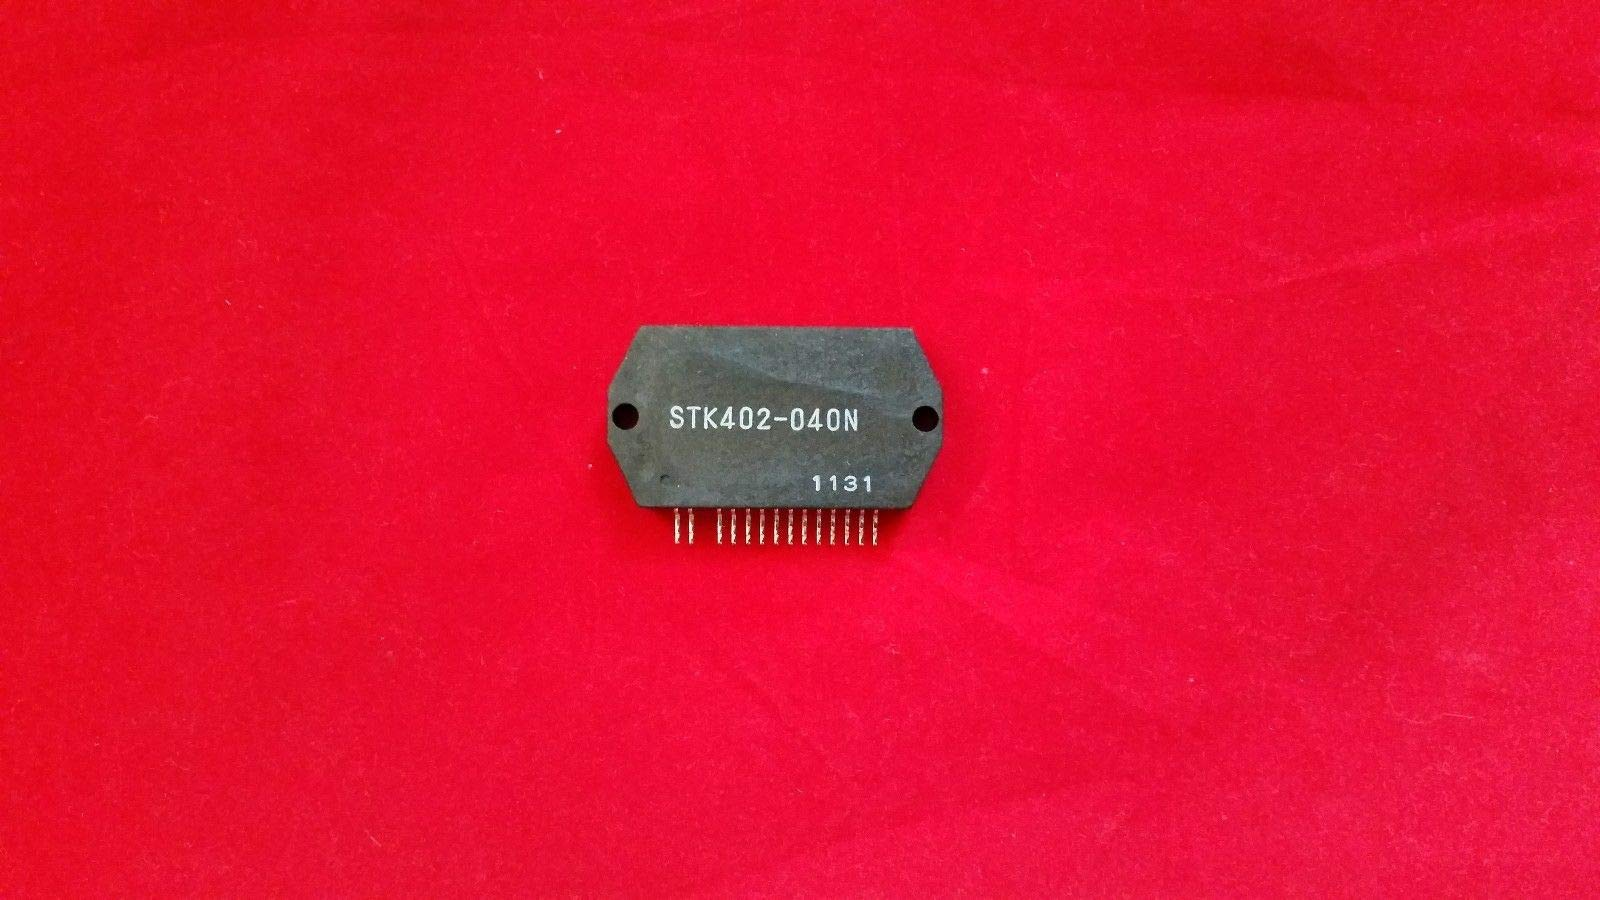 1PC STK402-040N Integrated Circuit + Heat Sink Compound